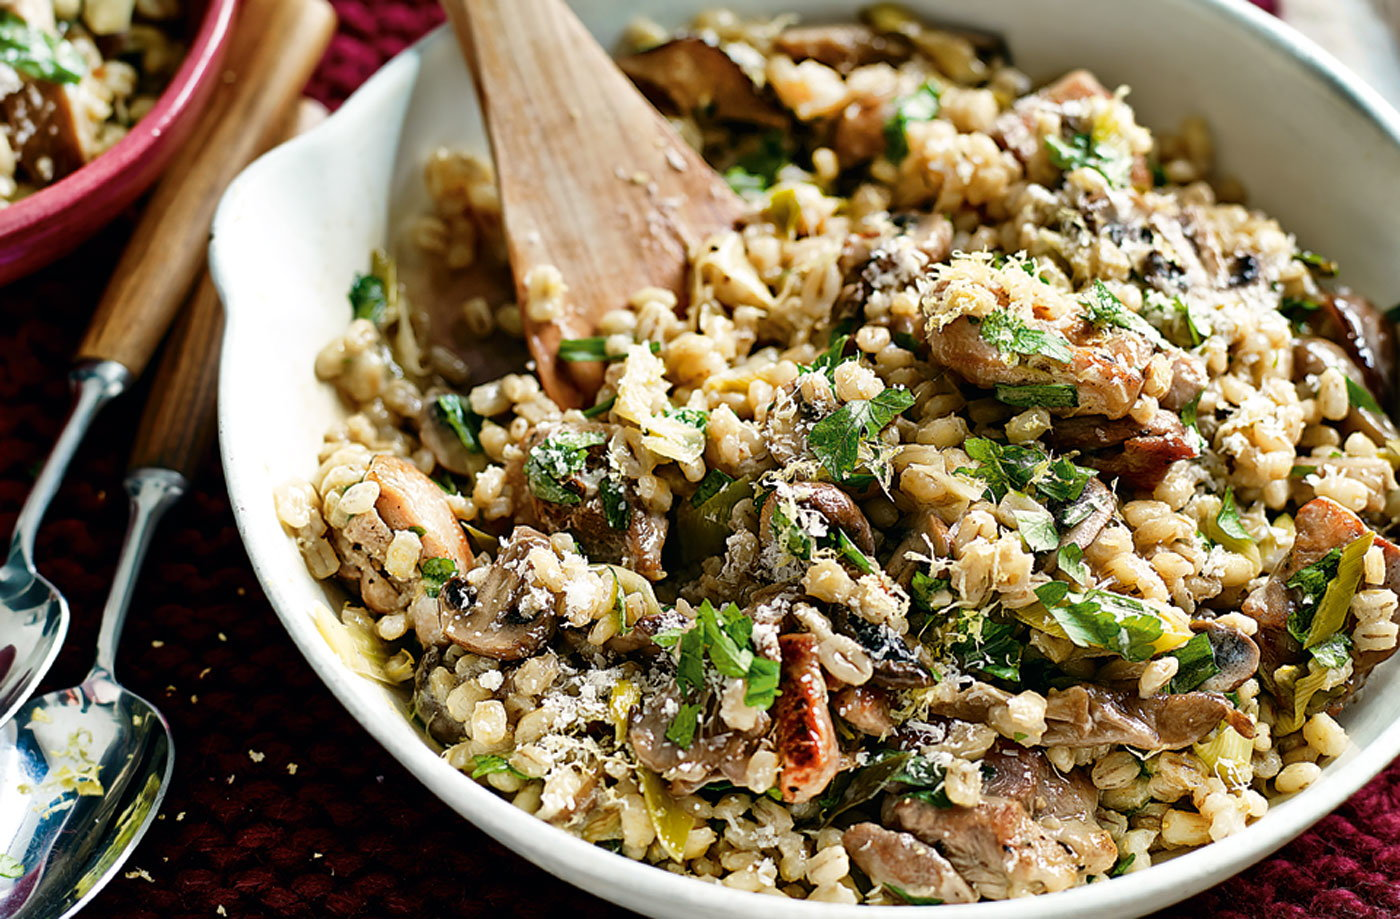 Try this fantastic risotto made with pearl barley, chicken, leeks and